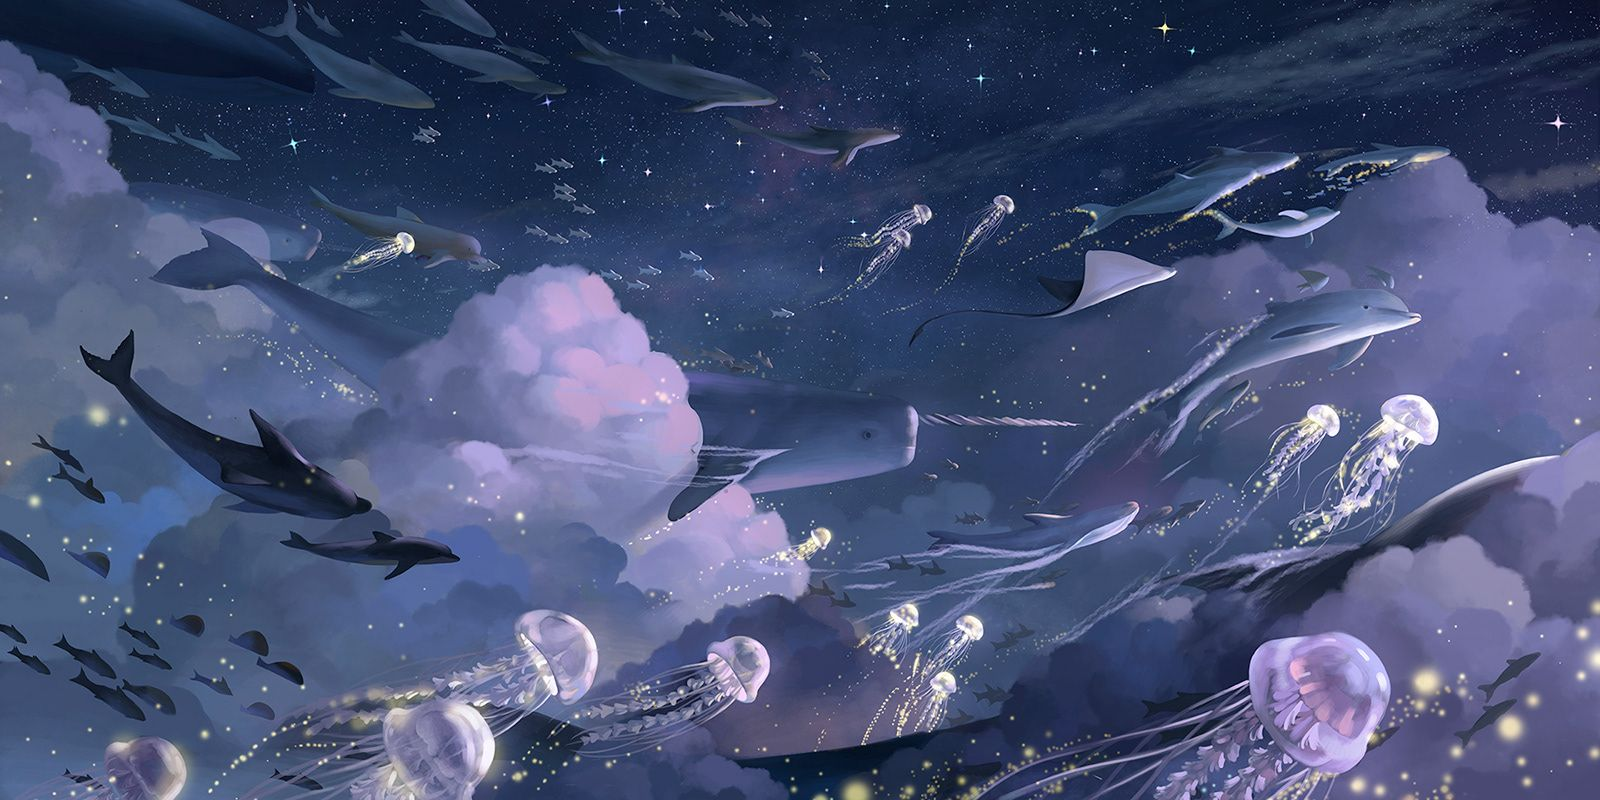 the sea of the sky